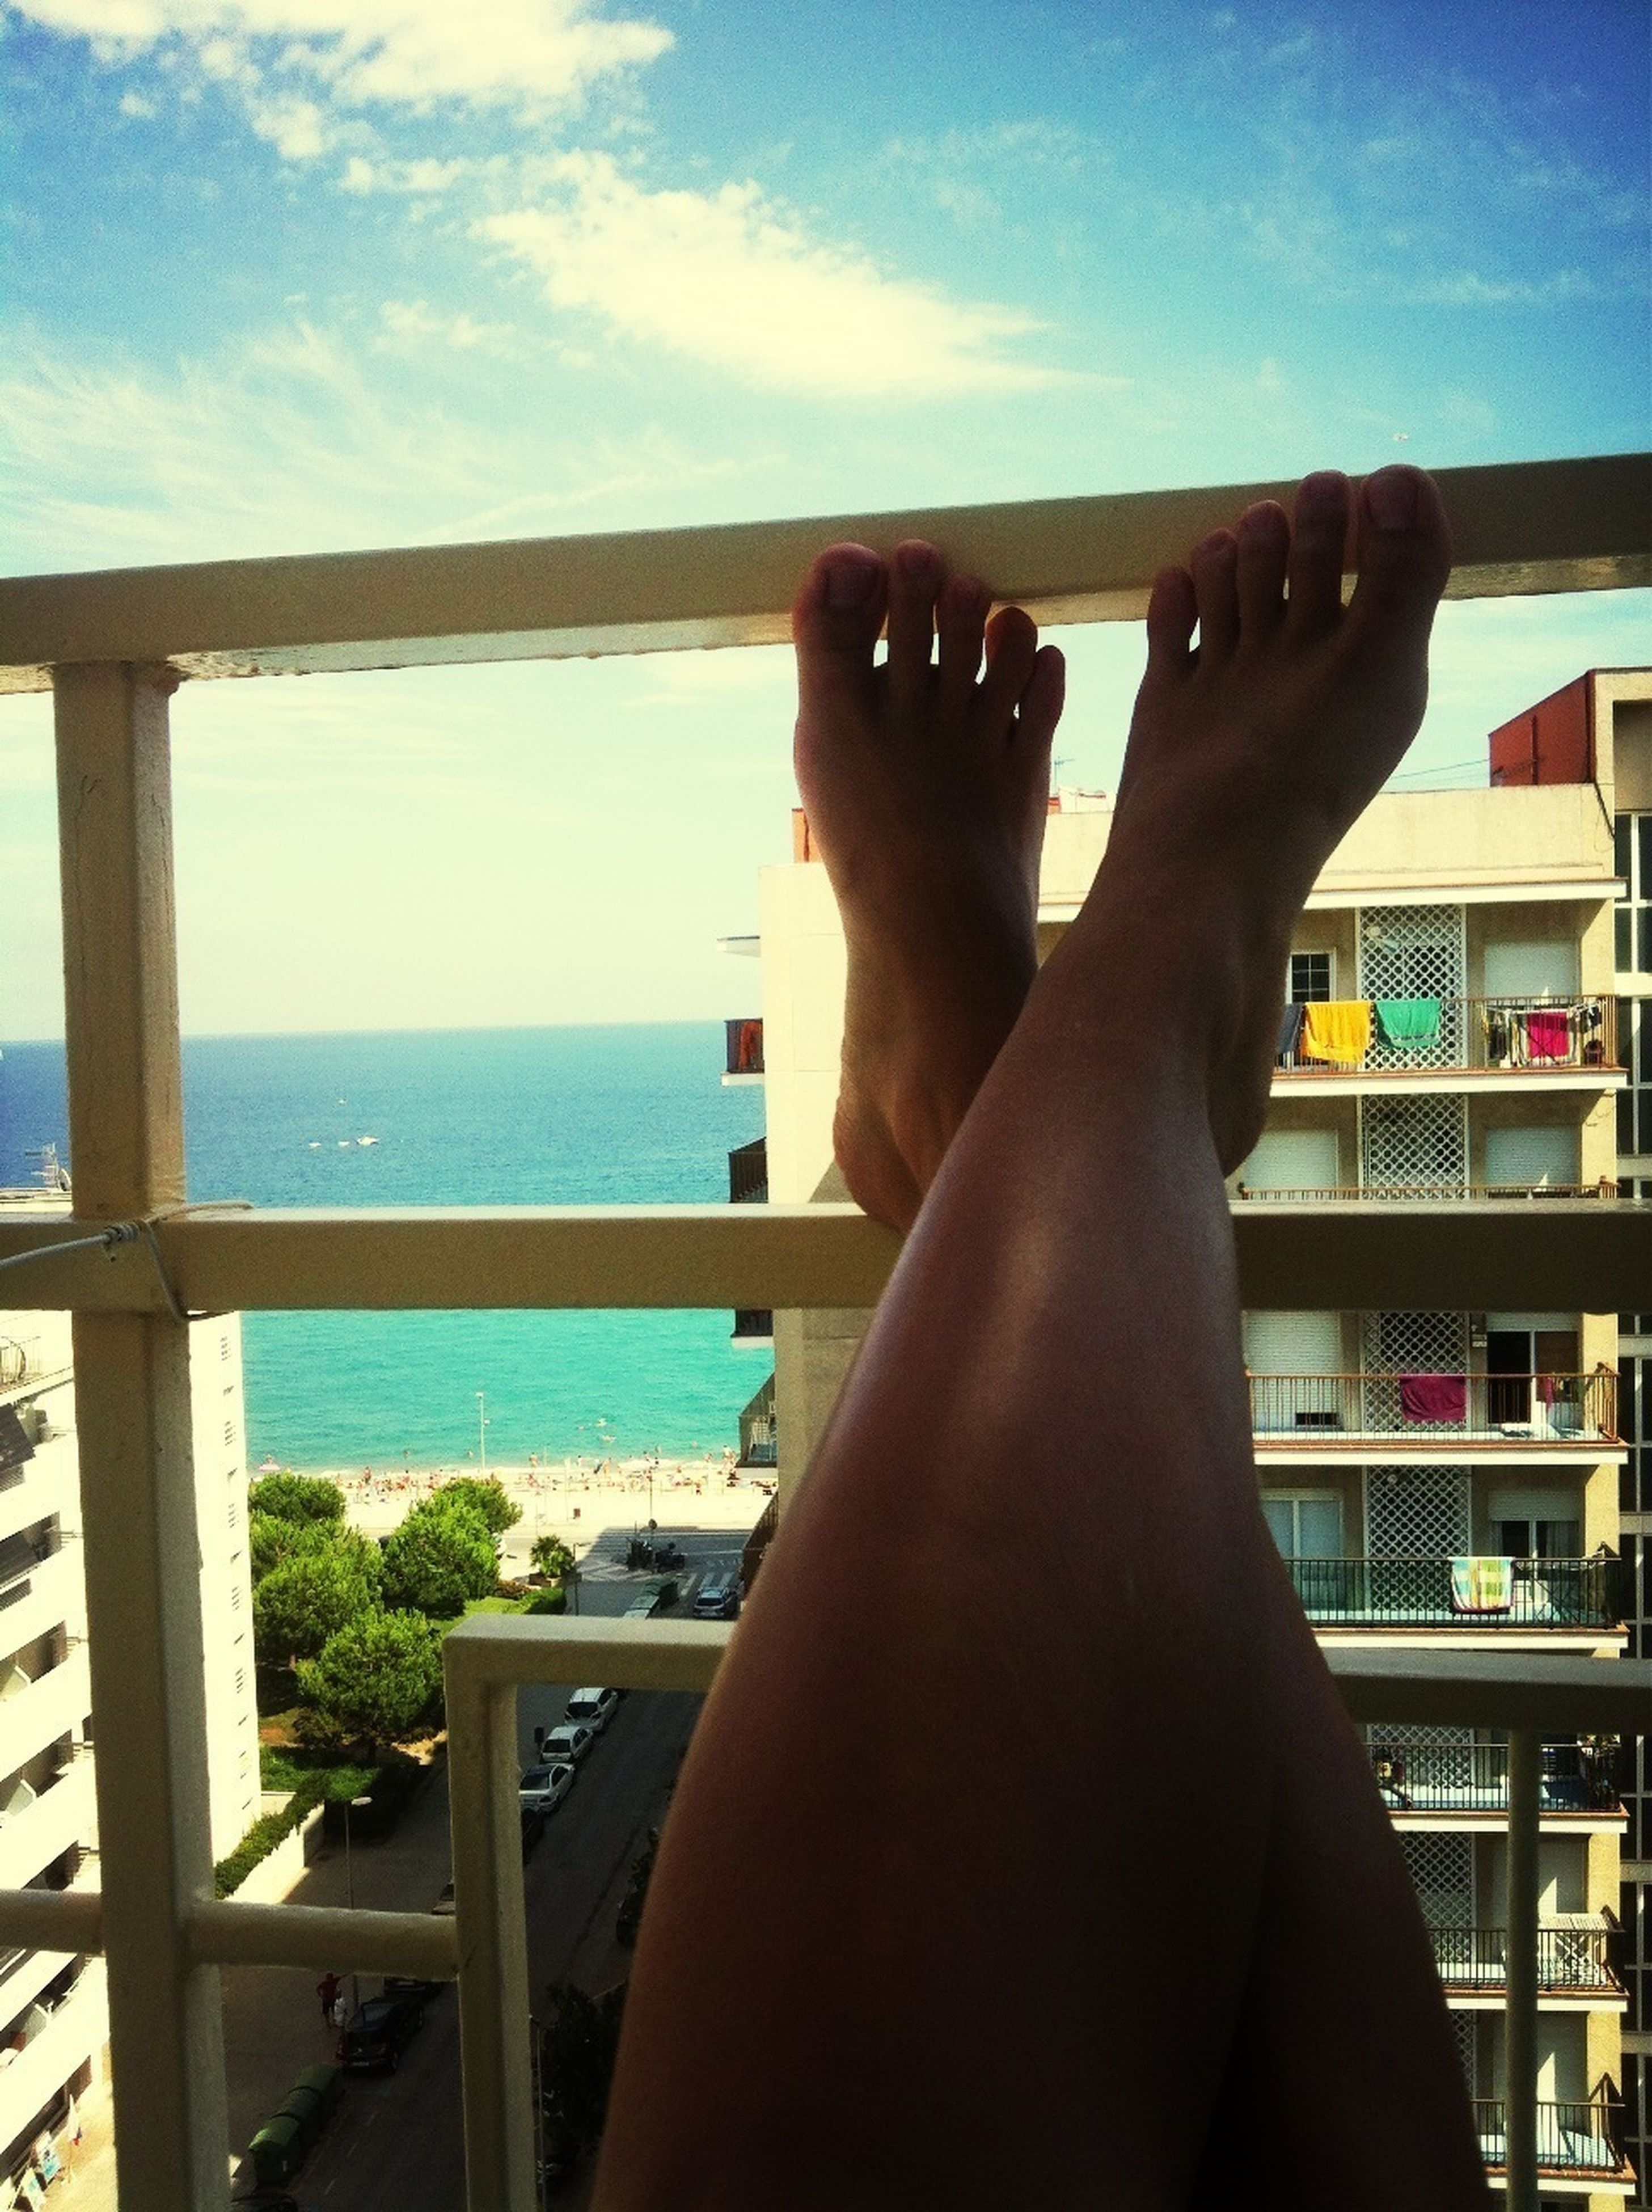 person, barefoot, relaxation, low section, lifestyles, sea, sky, leisure activity, indoors, personal perspective, sunlight, legs crossed at ankle, horizon over water, railing, water, window